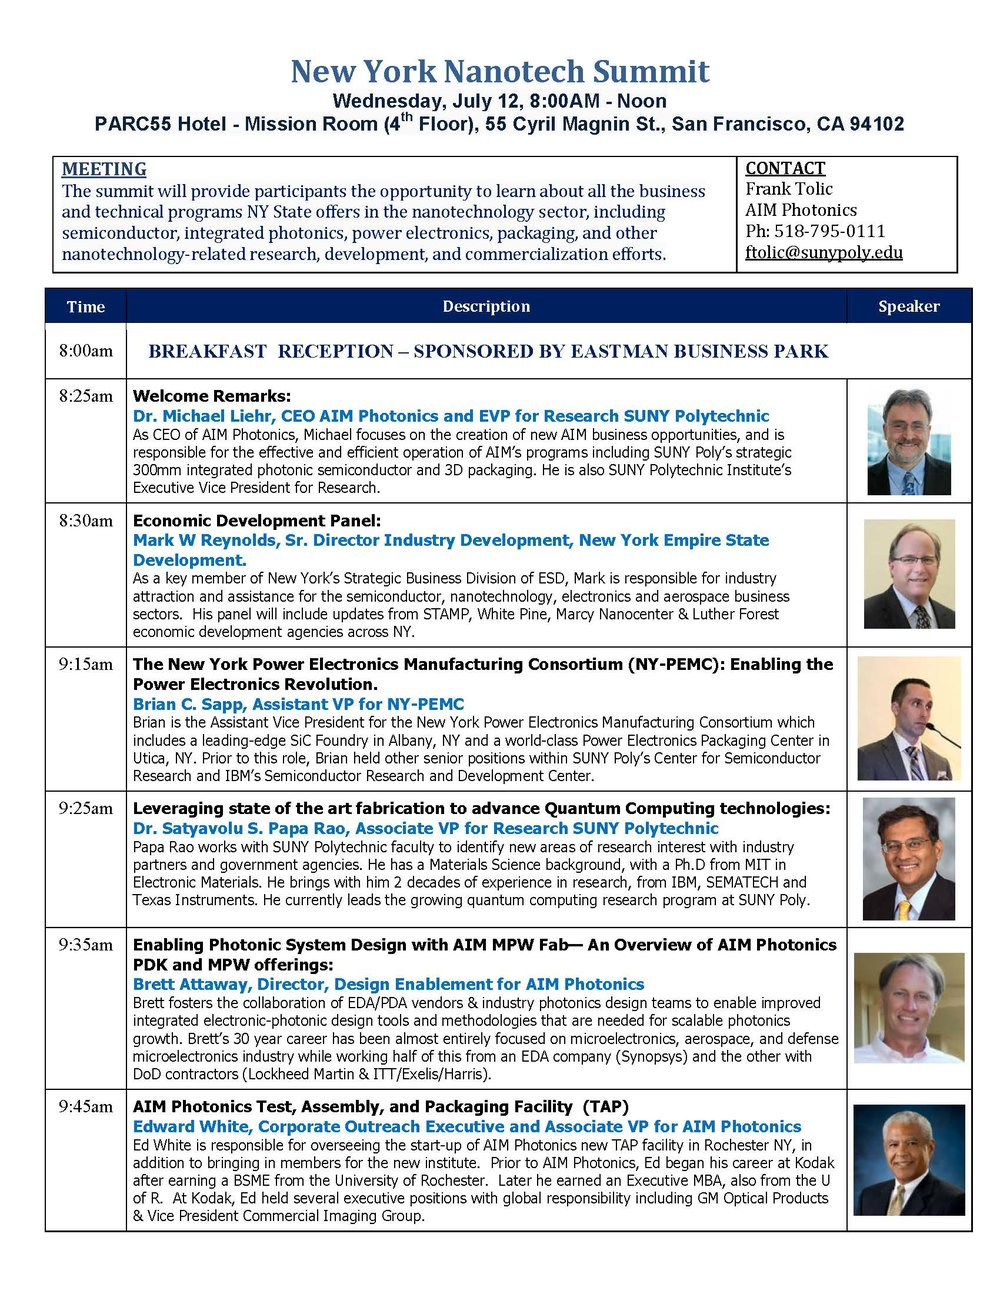 NY Nanotech Summit Agenda July 12_2017 FINAL_Page_1.jpg